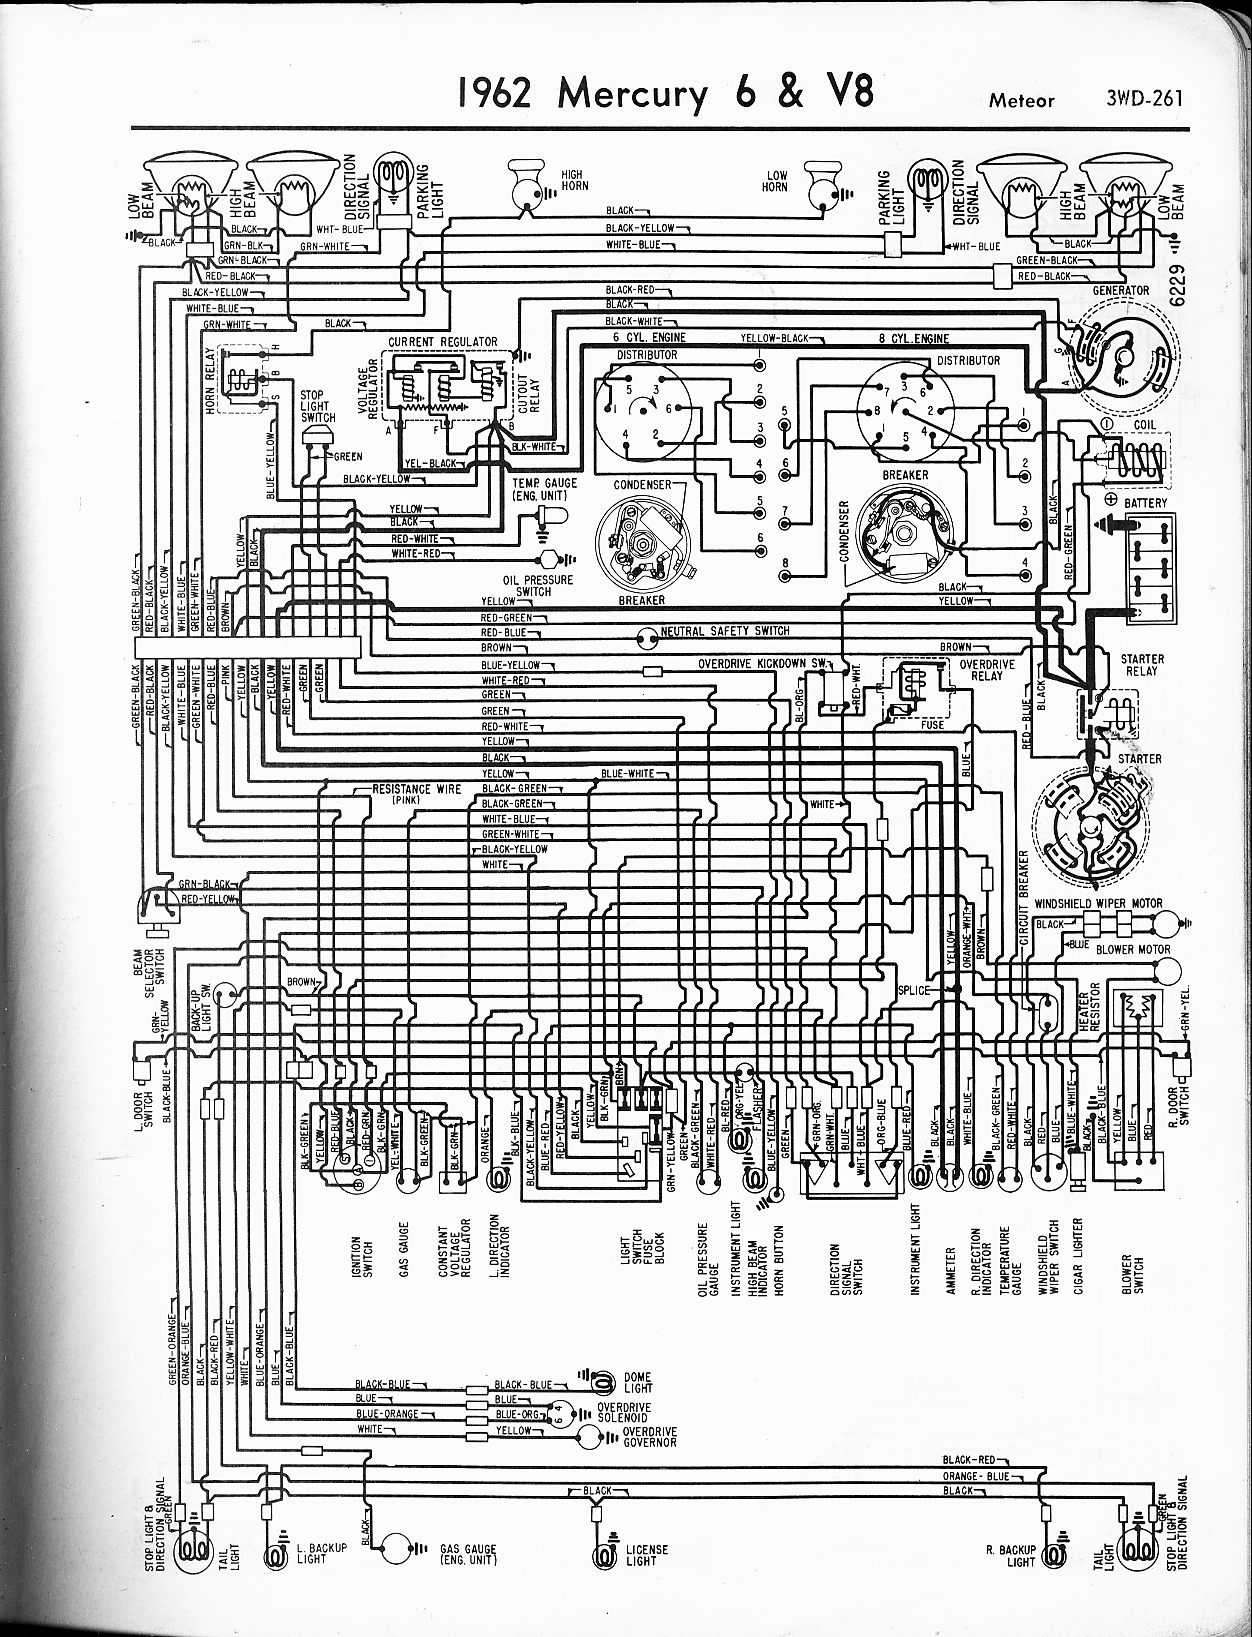 1969 Mercury Cyclone Wiring Diagram Books Of 1968 Schematic Diagrams The Old Car Manual Project Rh Oldcarmanualproject Com